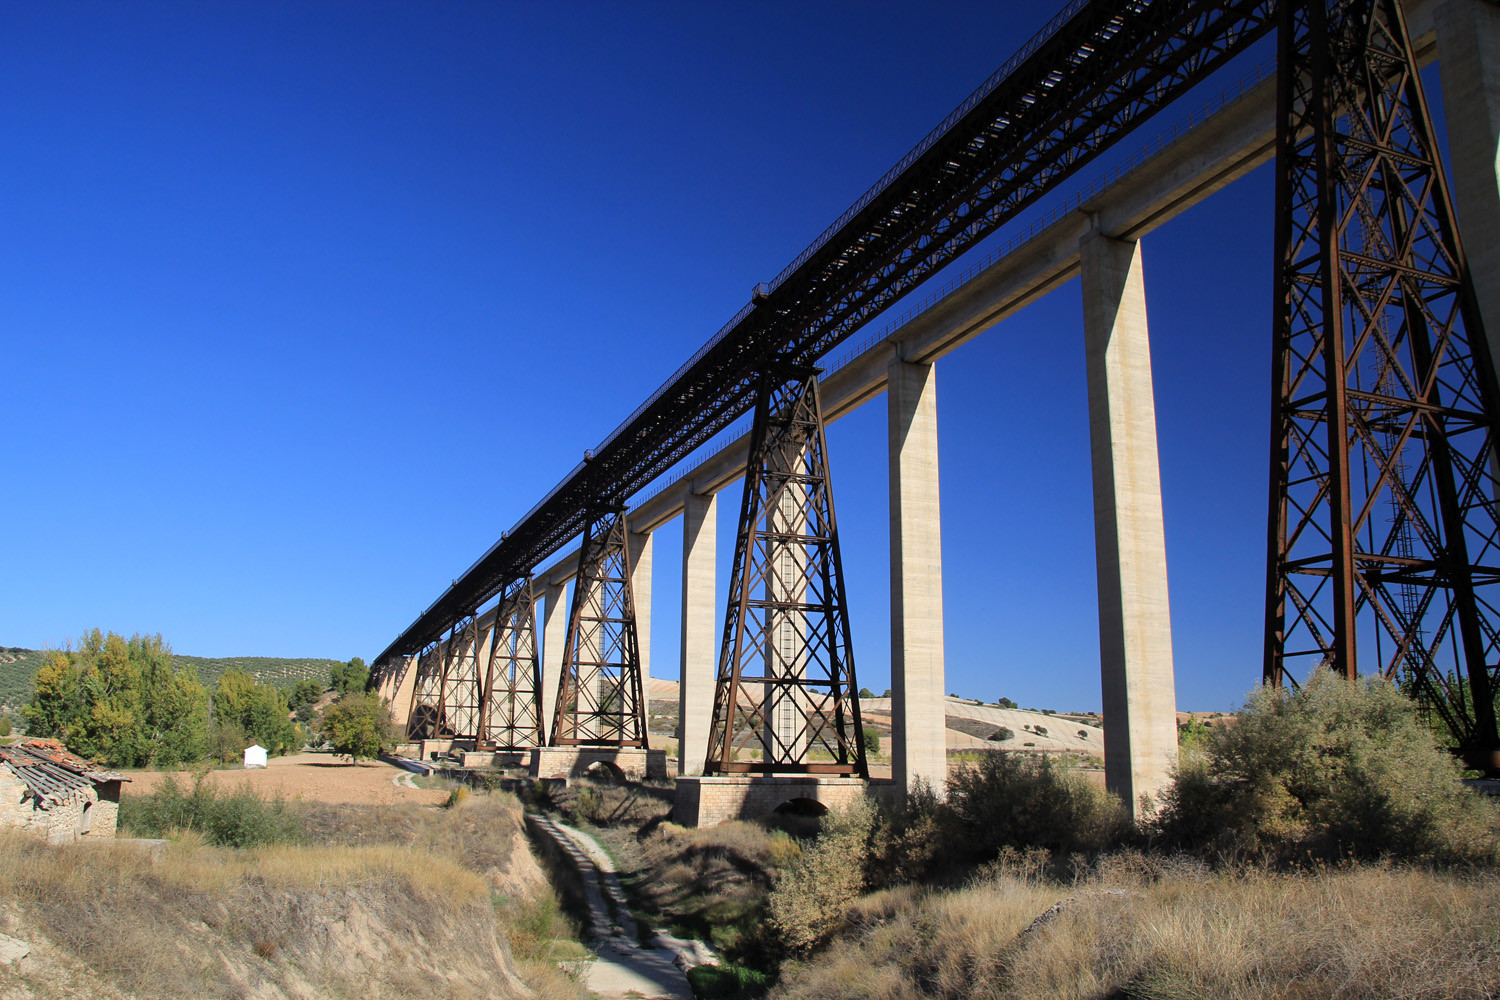 The Bridge designed by Eiffel in Guadahortuna